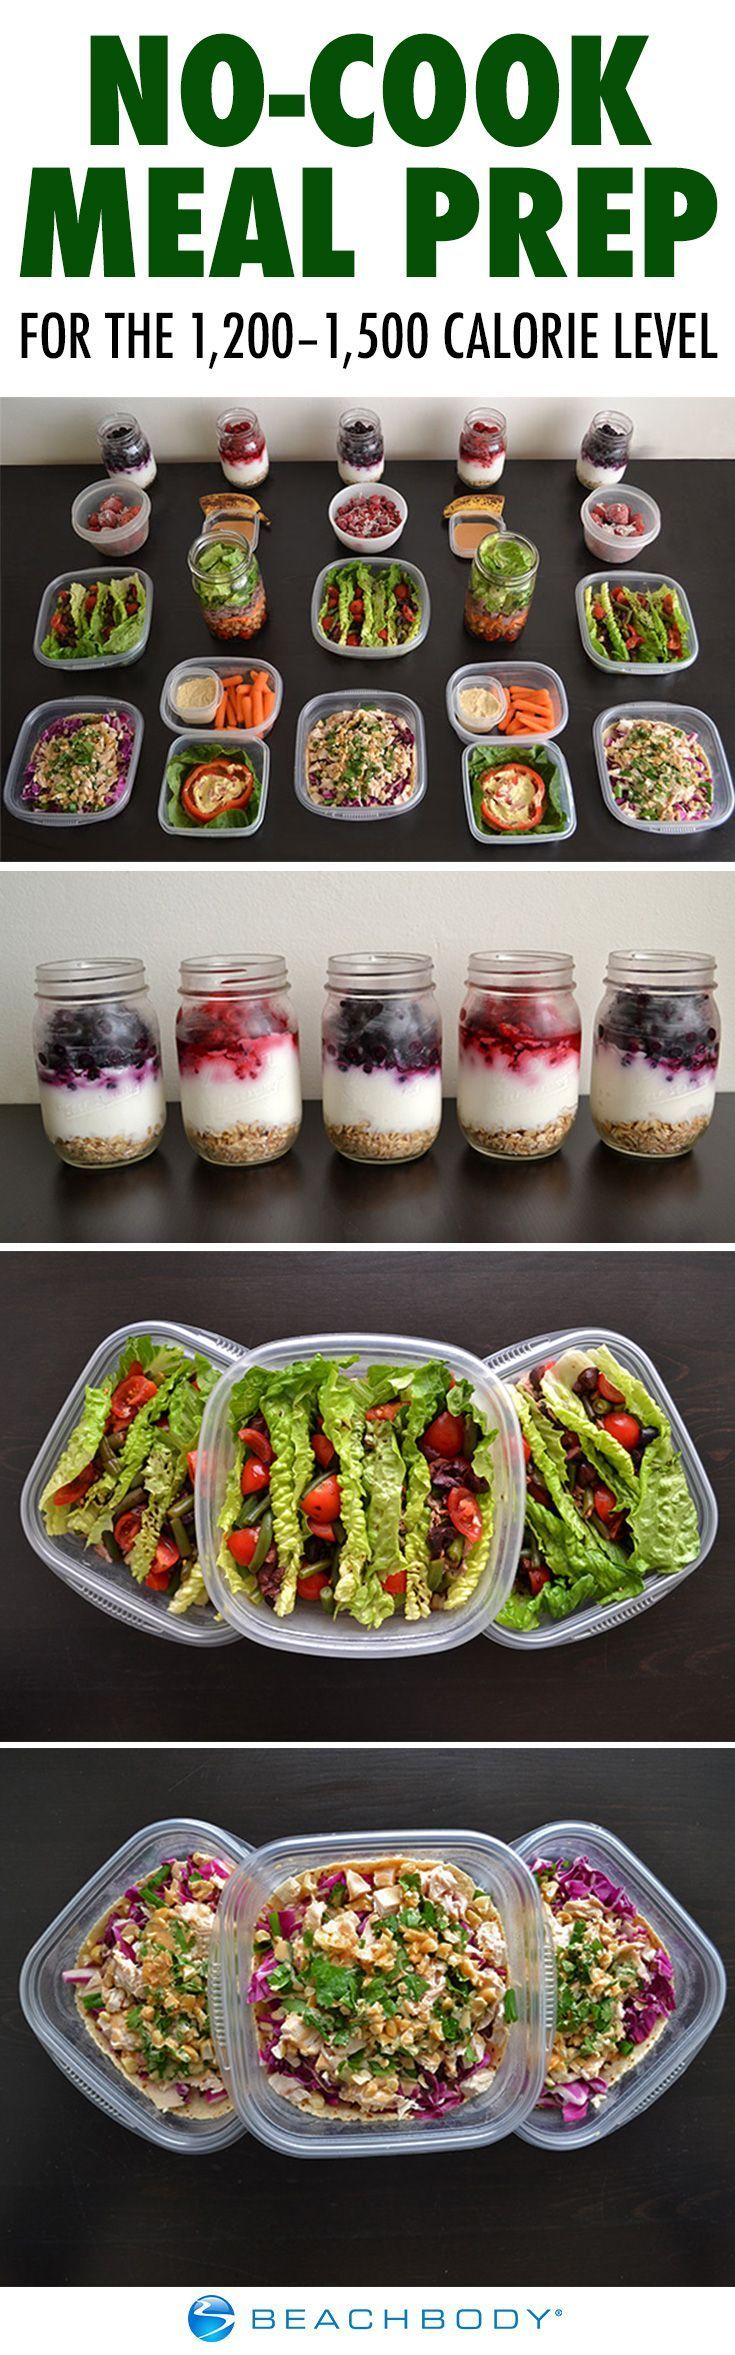 When it's too hot to turn on the stove or oven, a no-cook meal prep is the perfect way to prep your meals for the week. Get a complete guide here!: